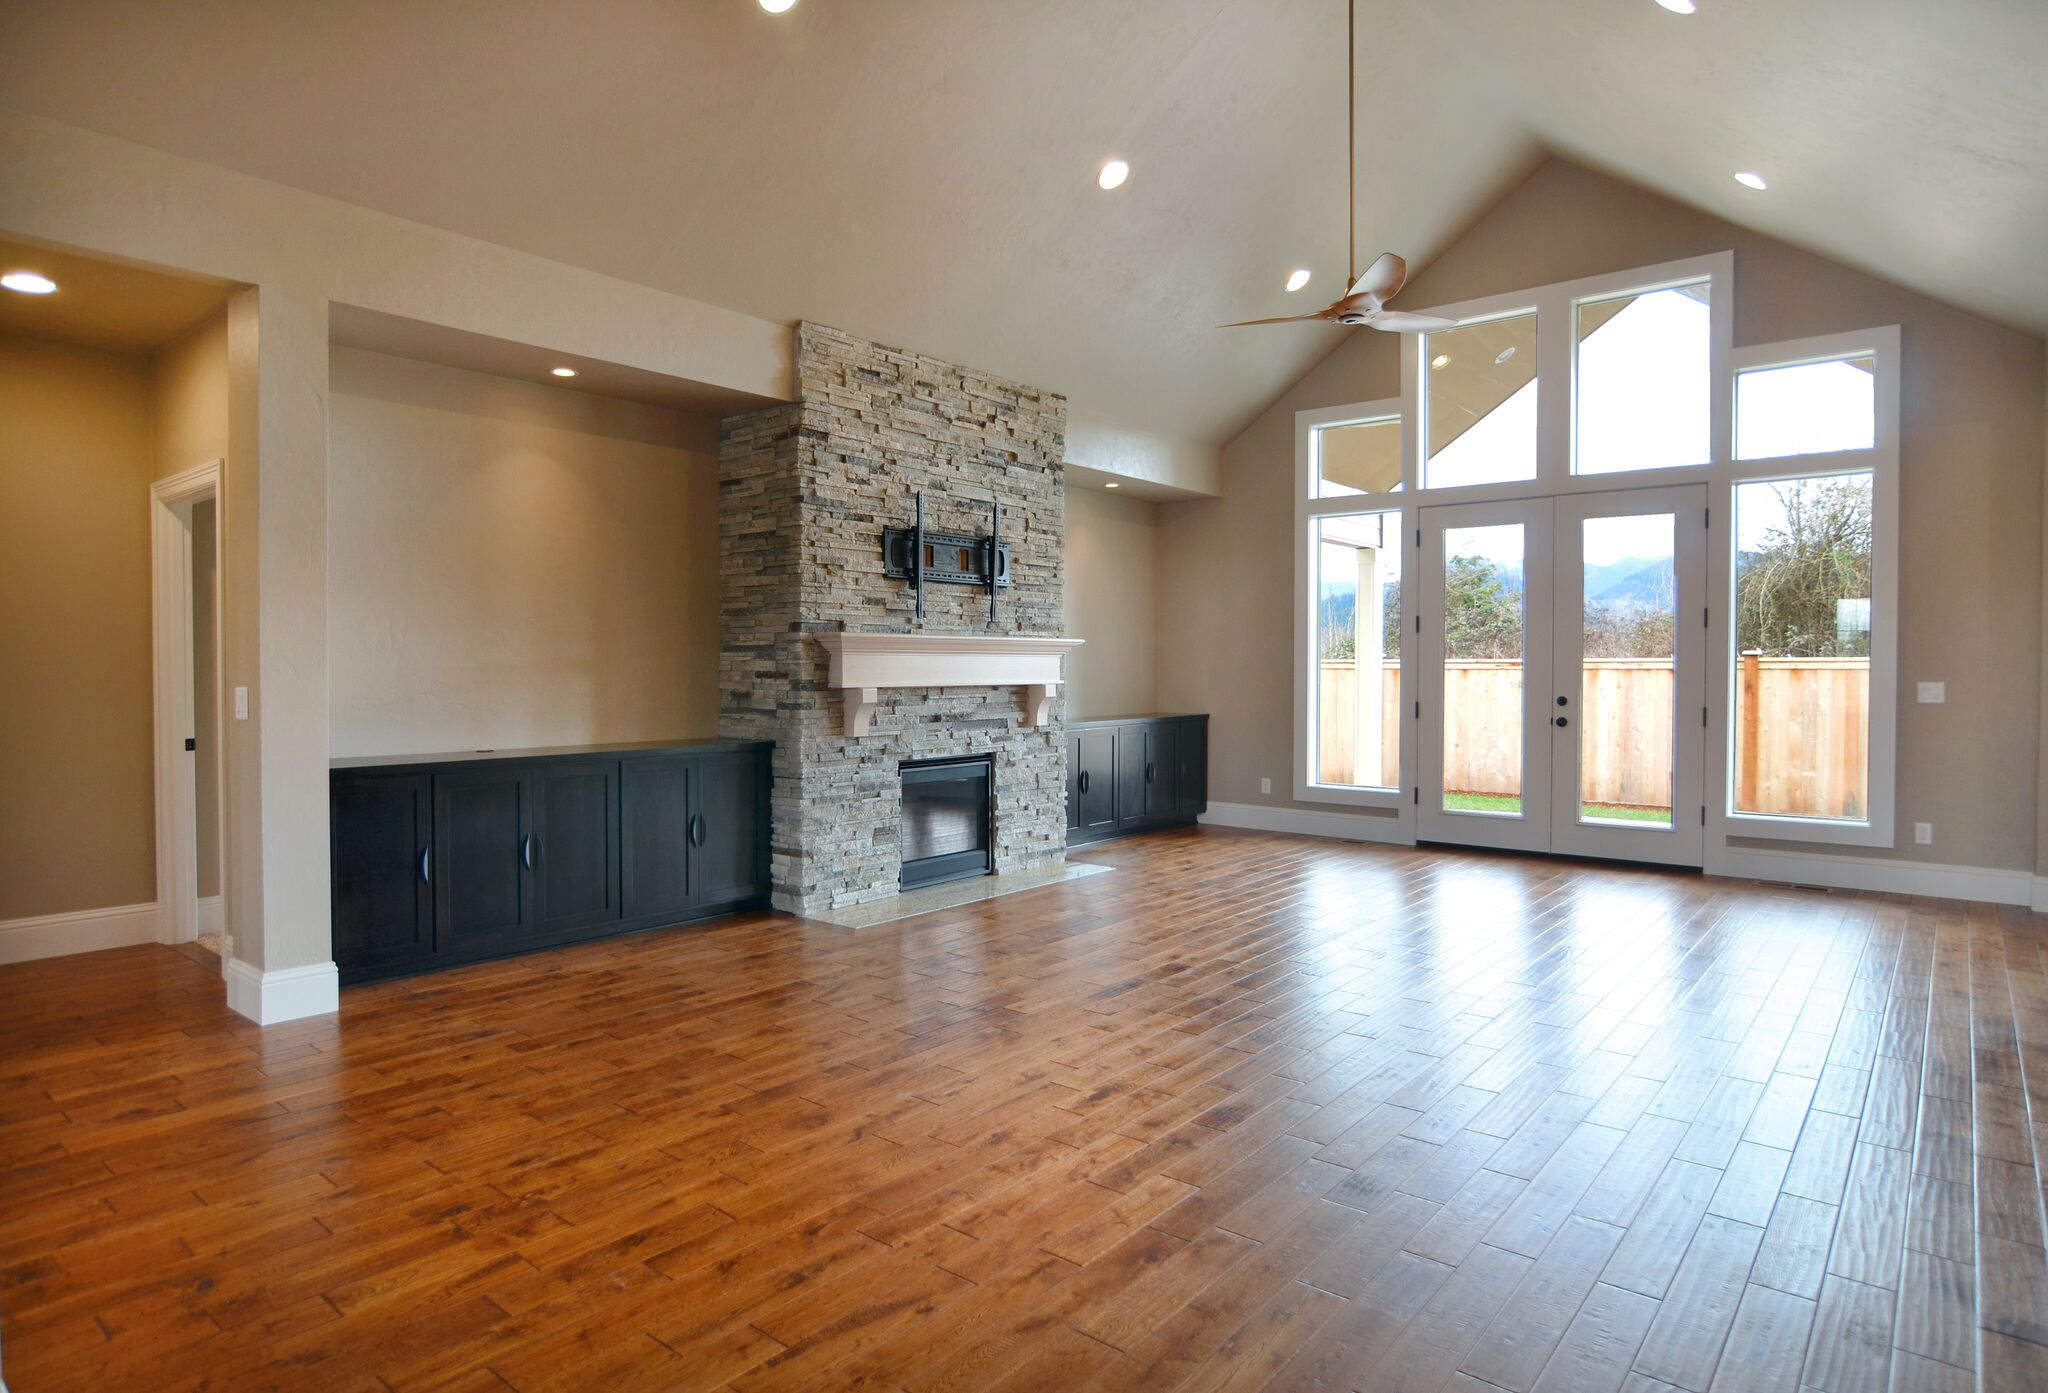 Great room with vaulted ceiling - *This these photos are similar to our new home that is under construction on Lot 33